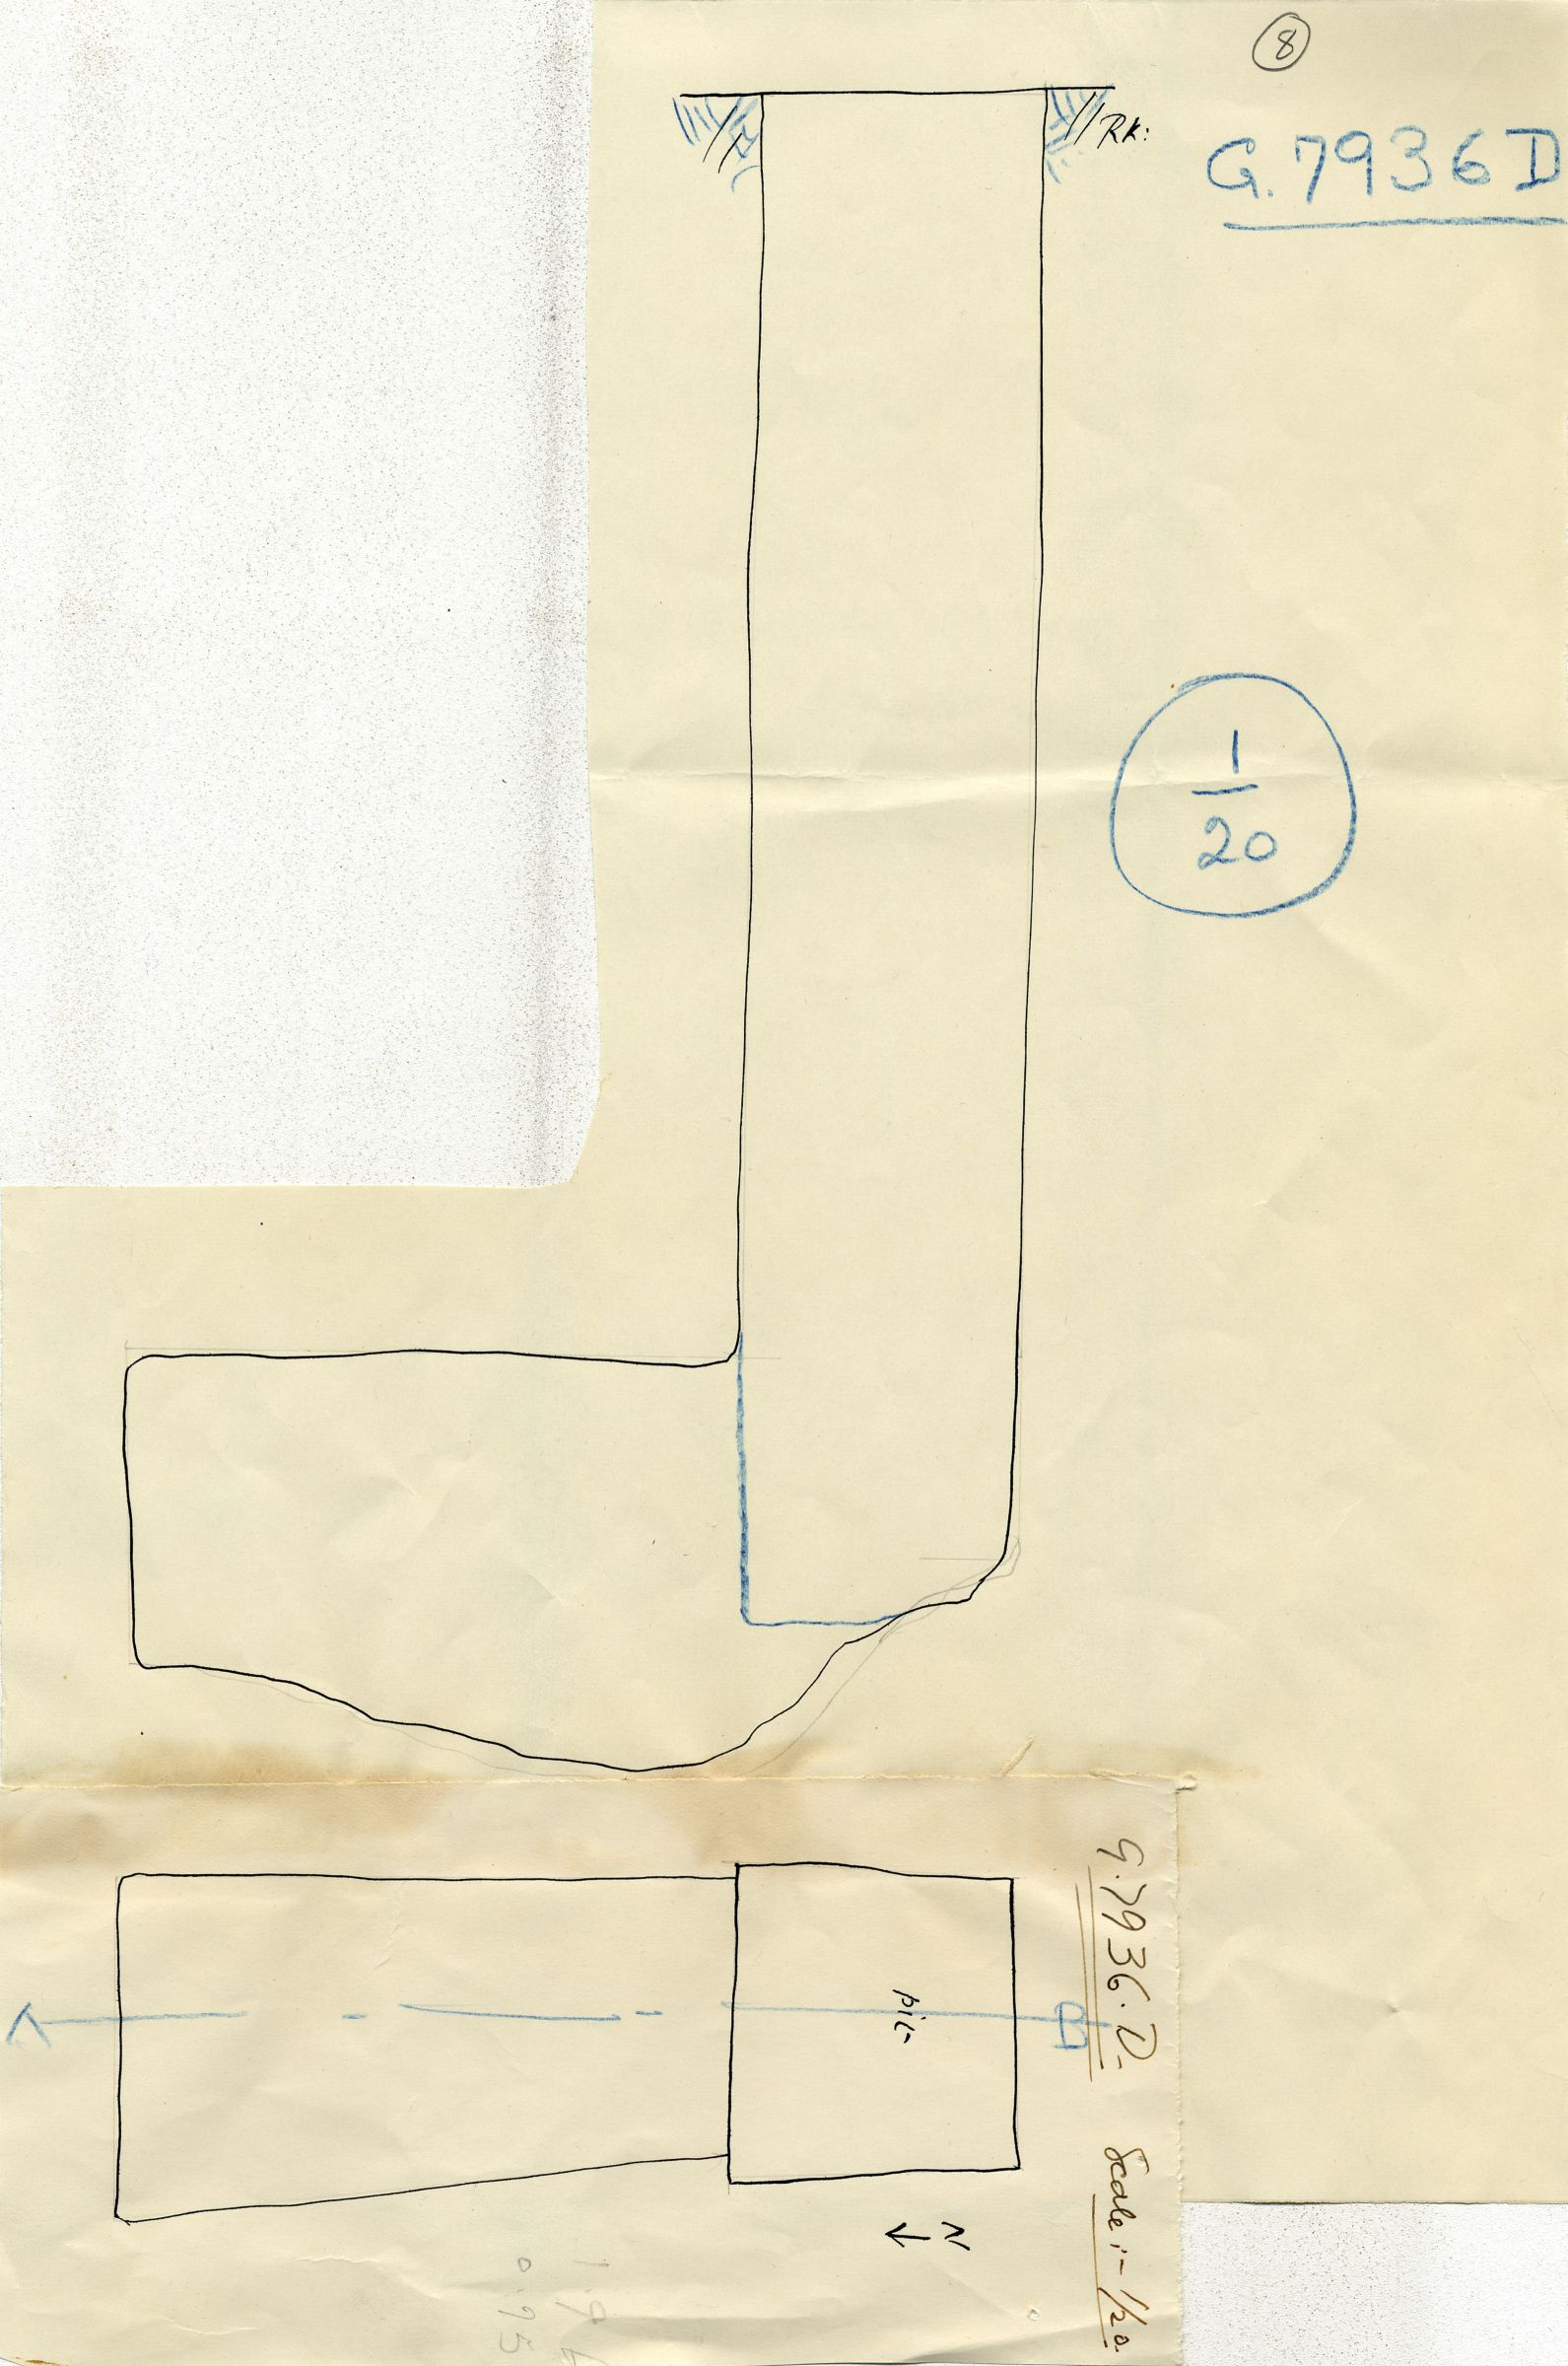 Maps and plans: G 7936, Shaft D